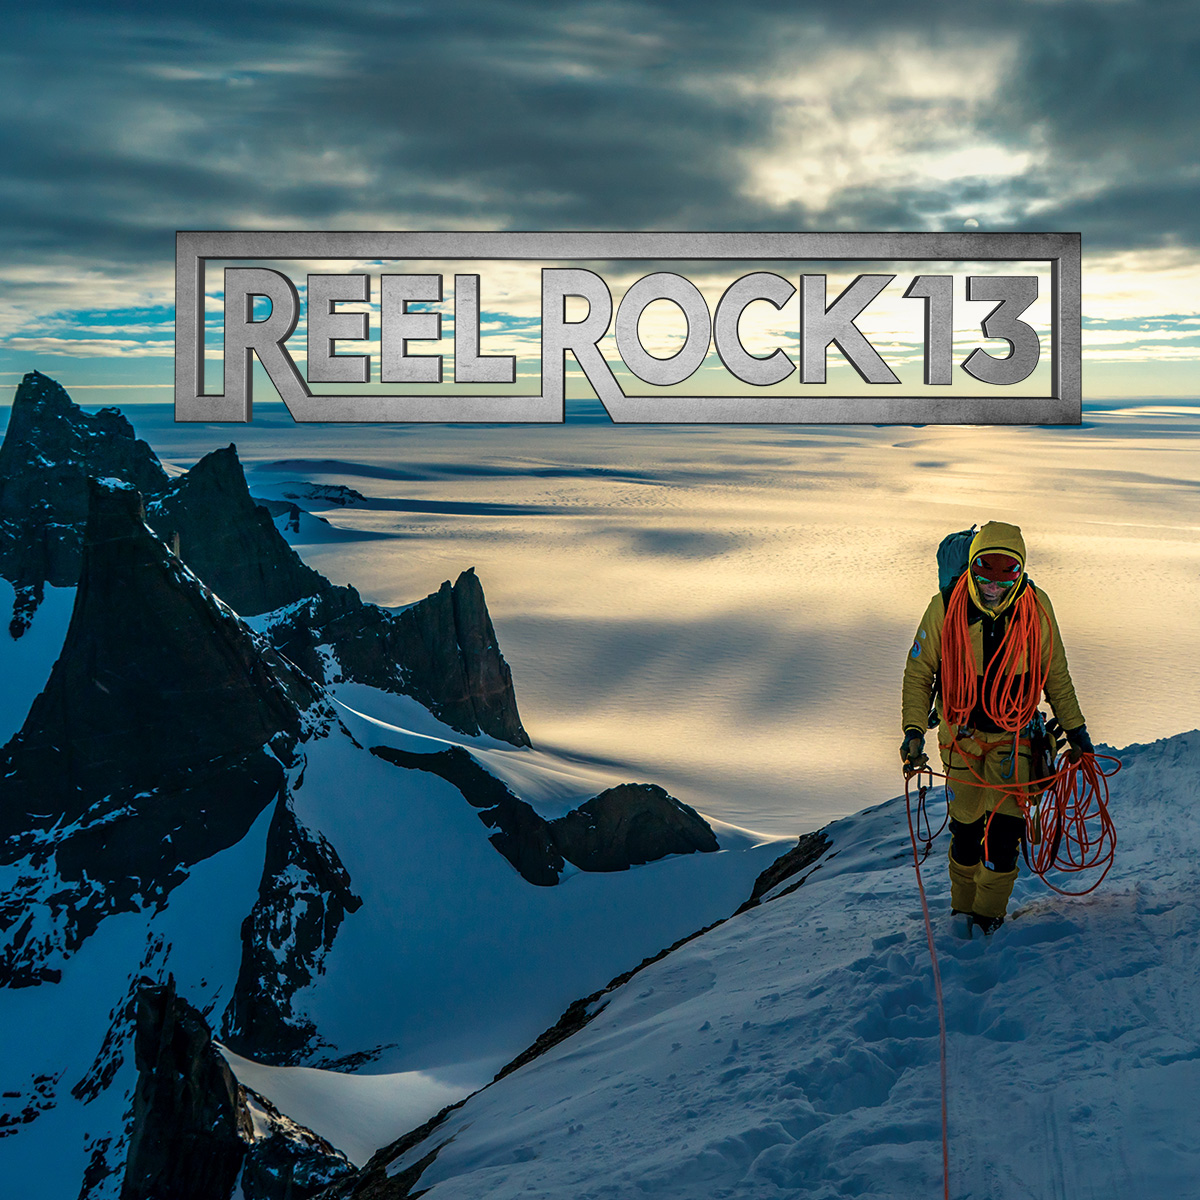 reel rock 13 vimff image trailer 1